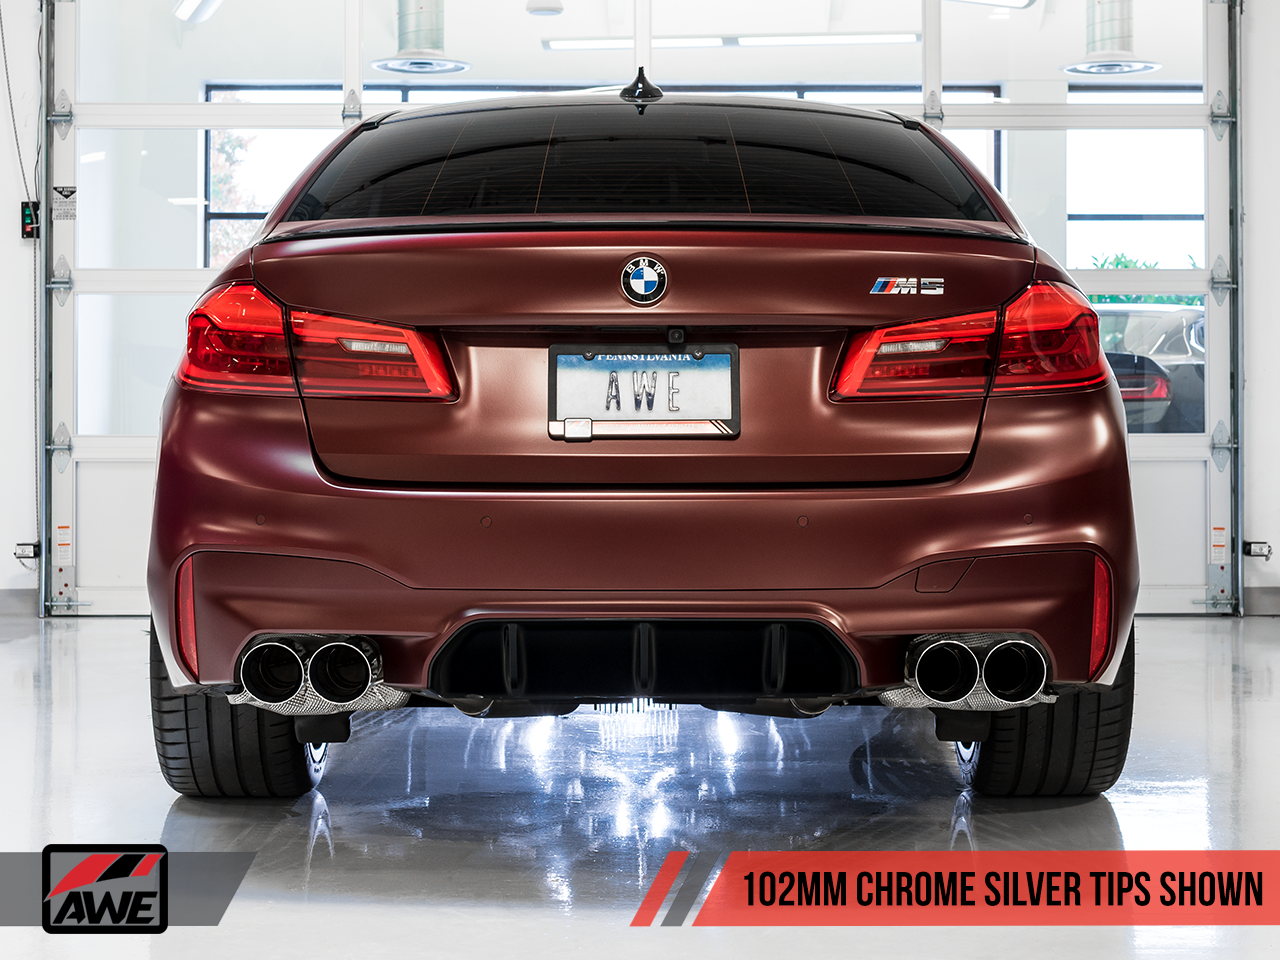 AWE RELEASES NEW EXHAUST SUITE FOR THE BMW F90 M5, AVAILABLE NOW